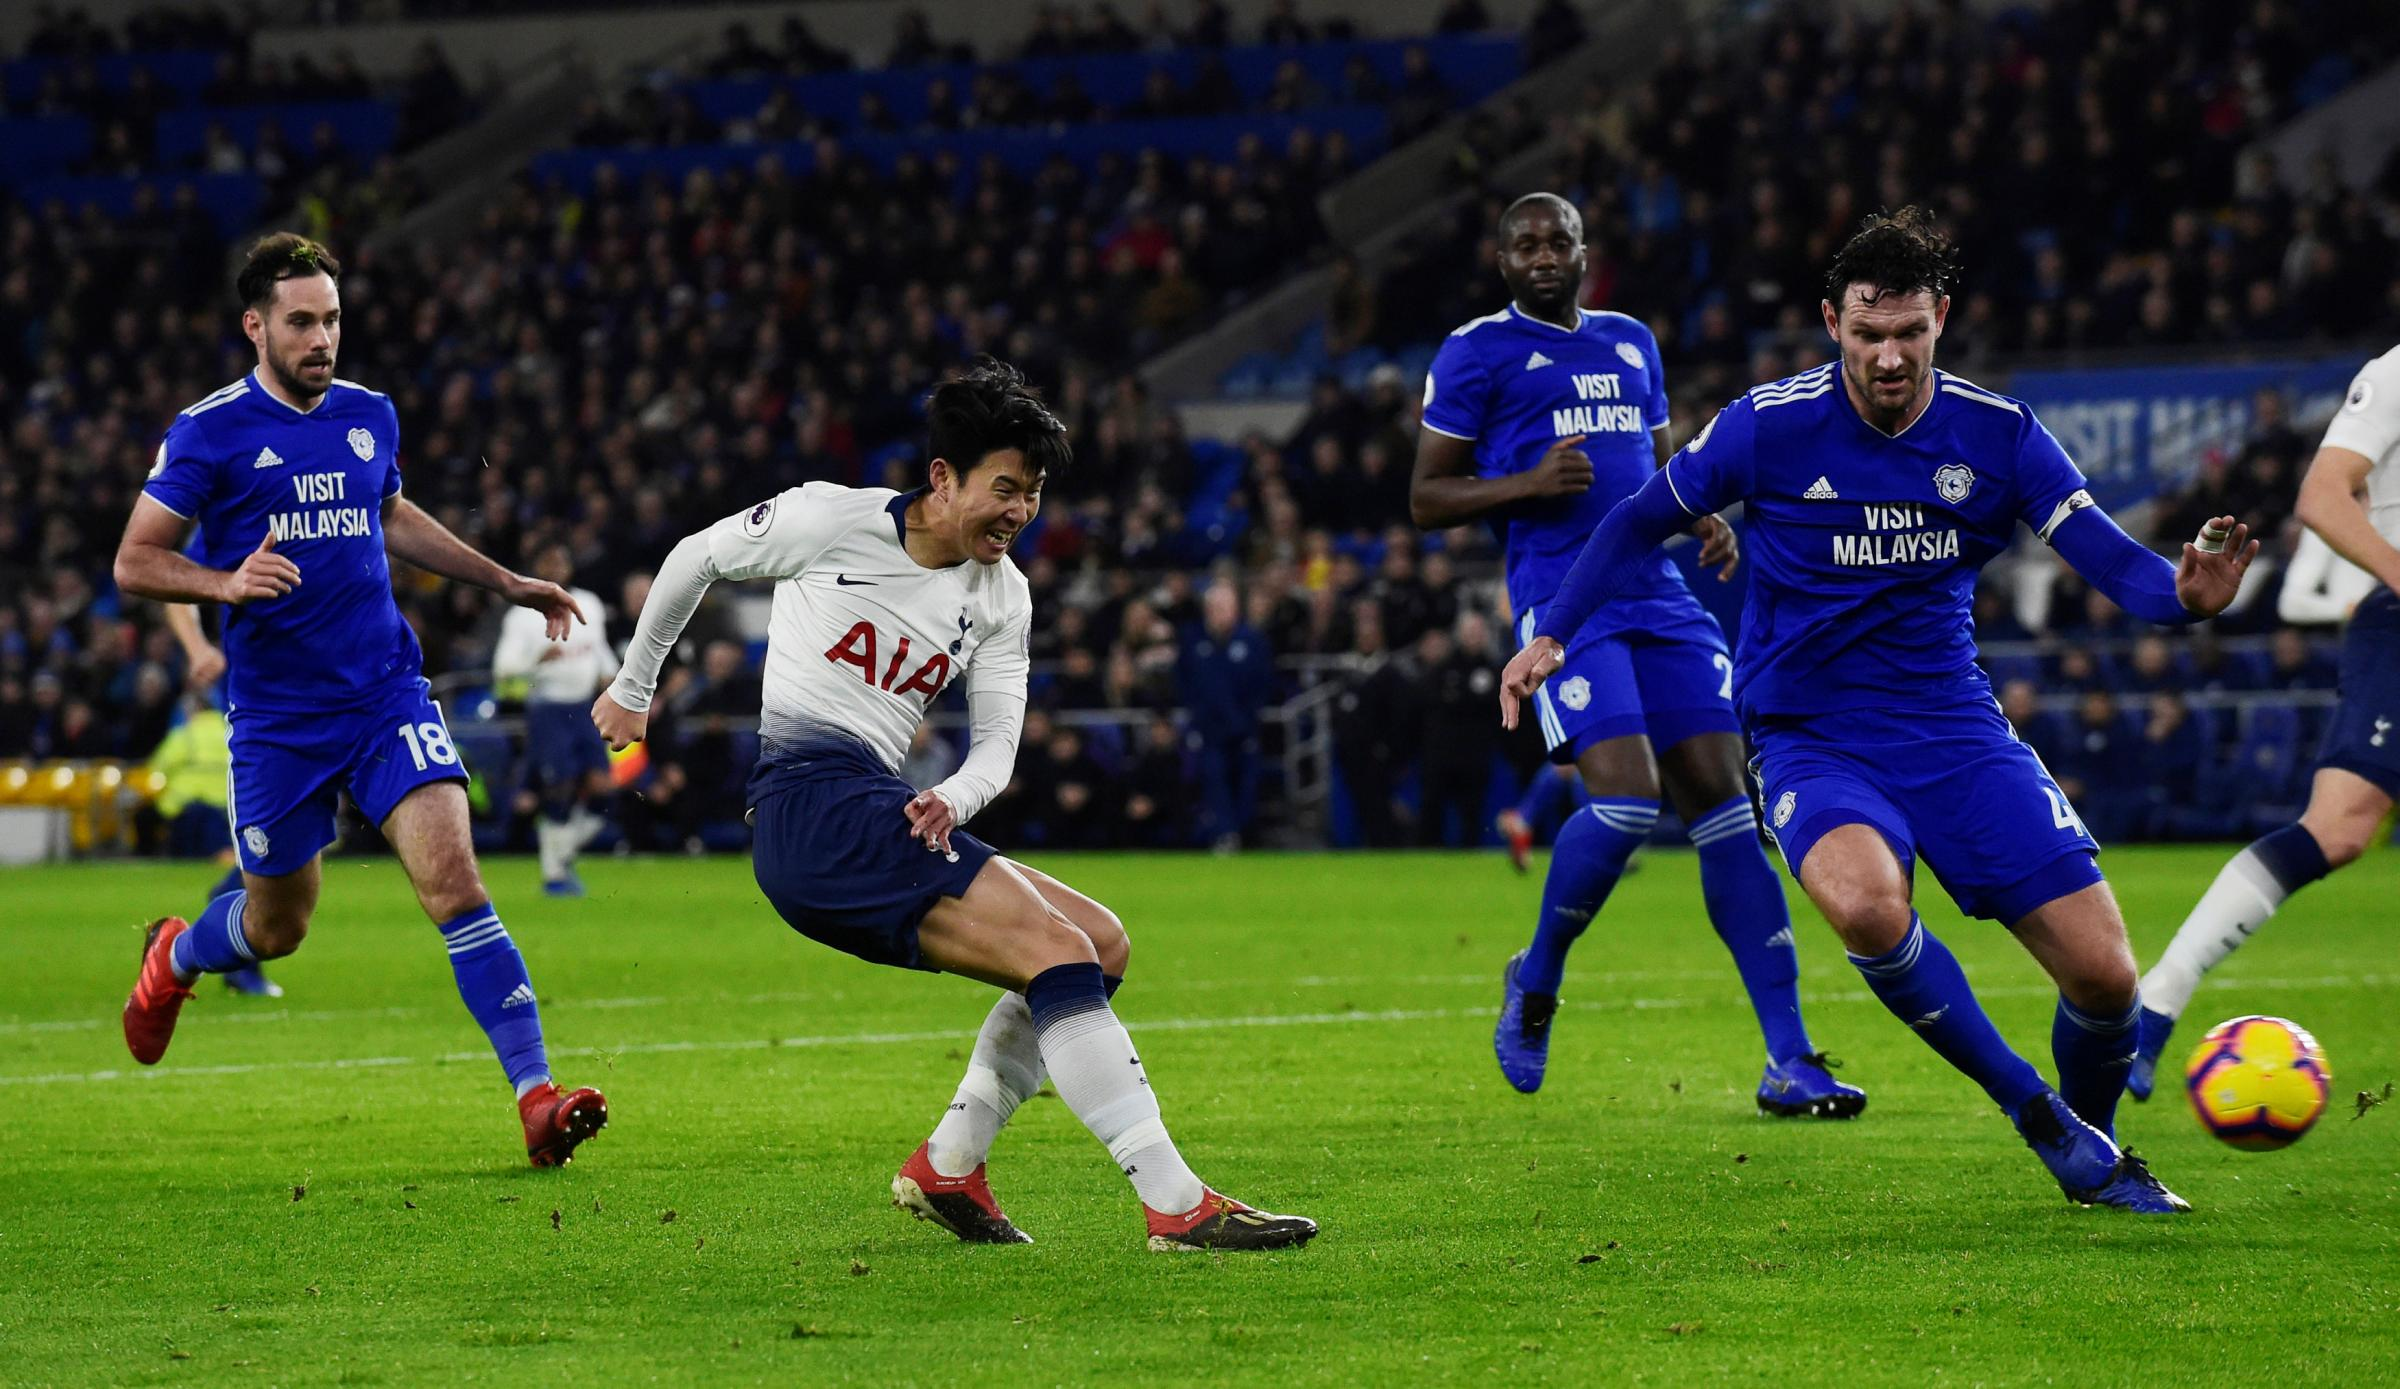 Job done: Son Heung-min scores Spurs' third goal. Picture: Action Images